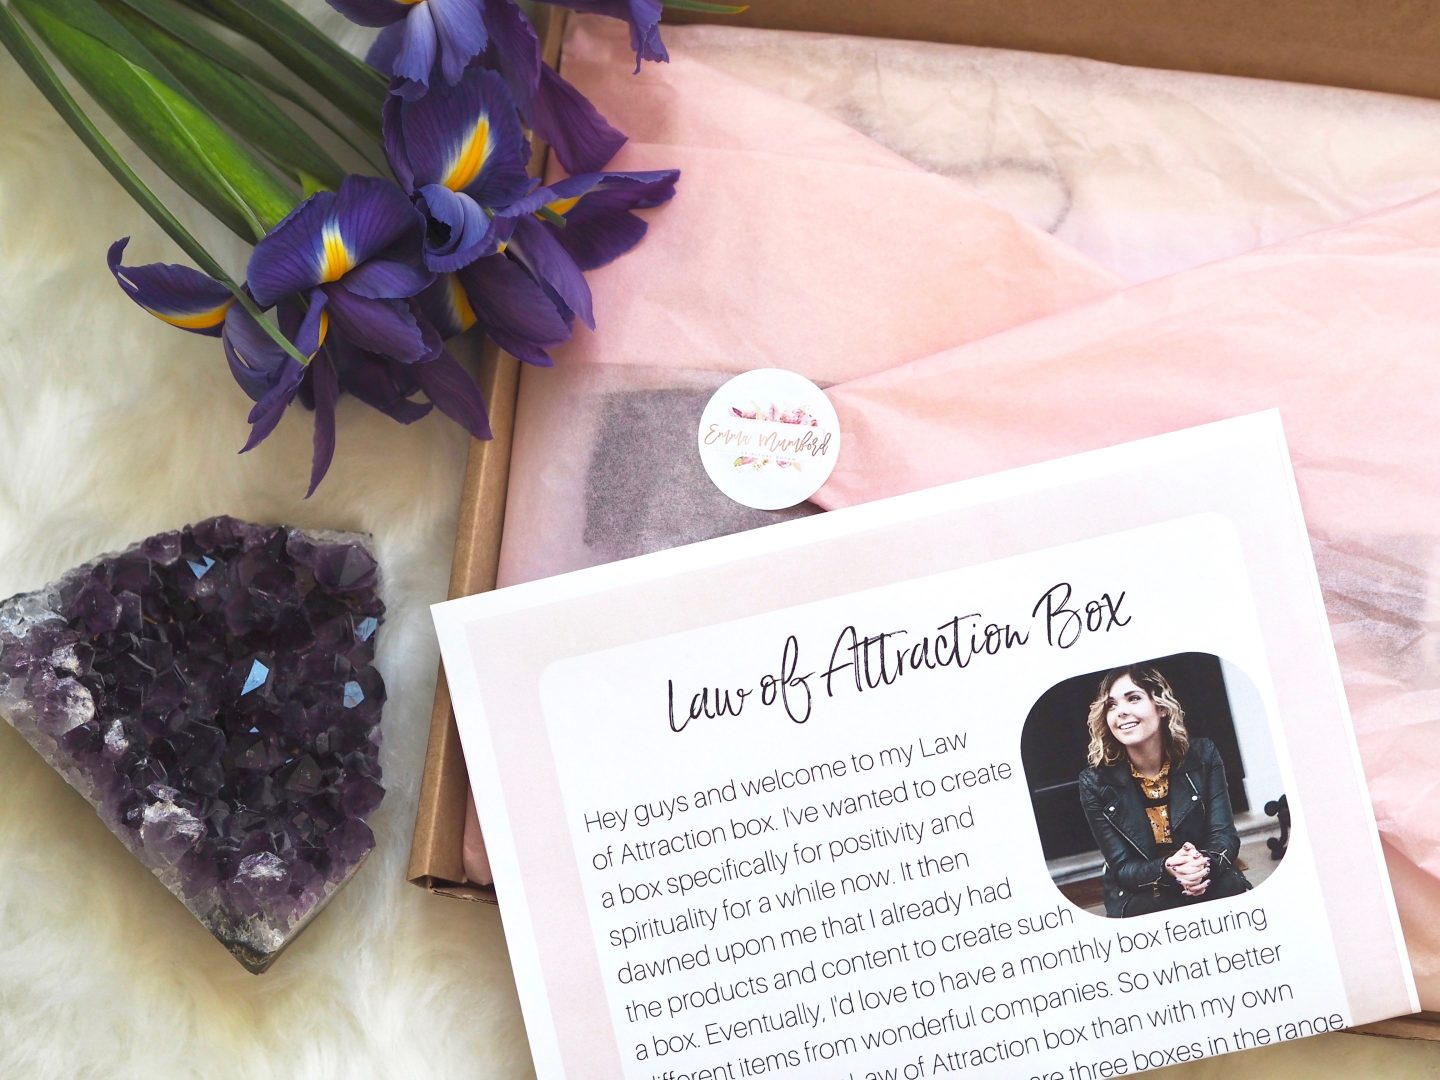 LAUNCHING MY OWN LAW OF ATTRACTION BOXES